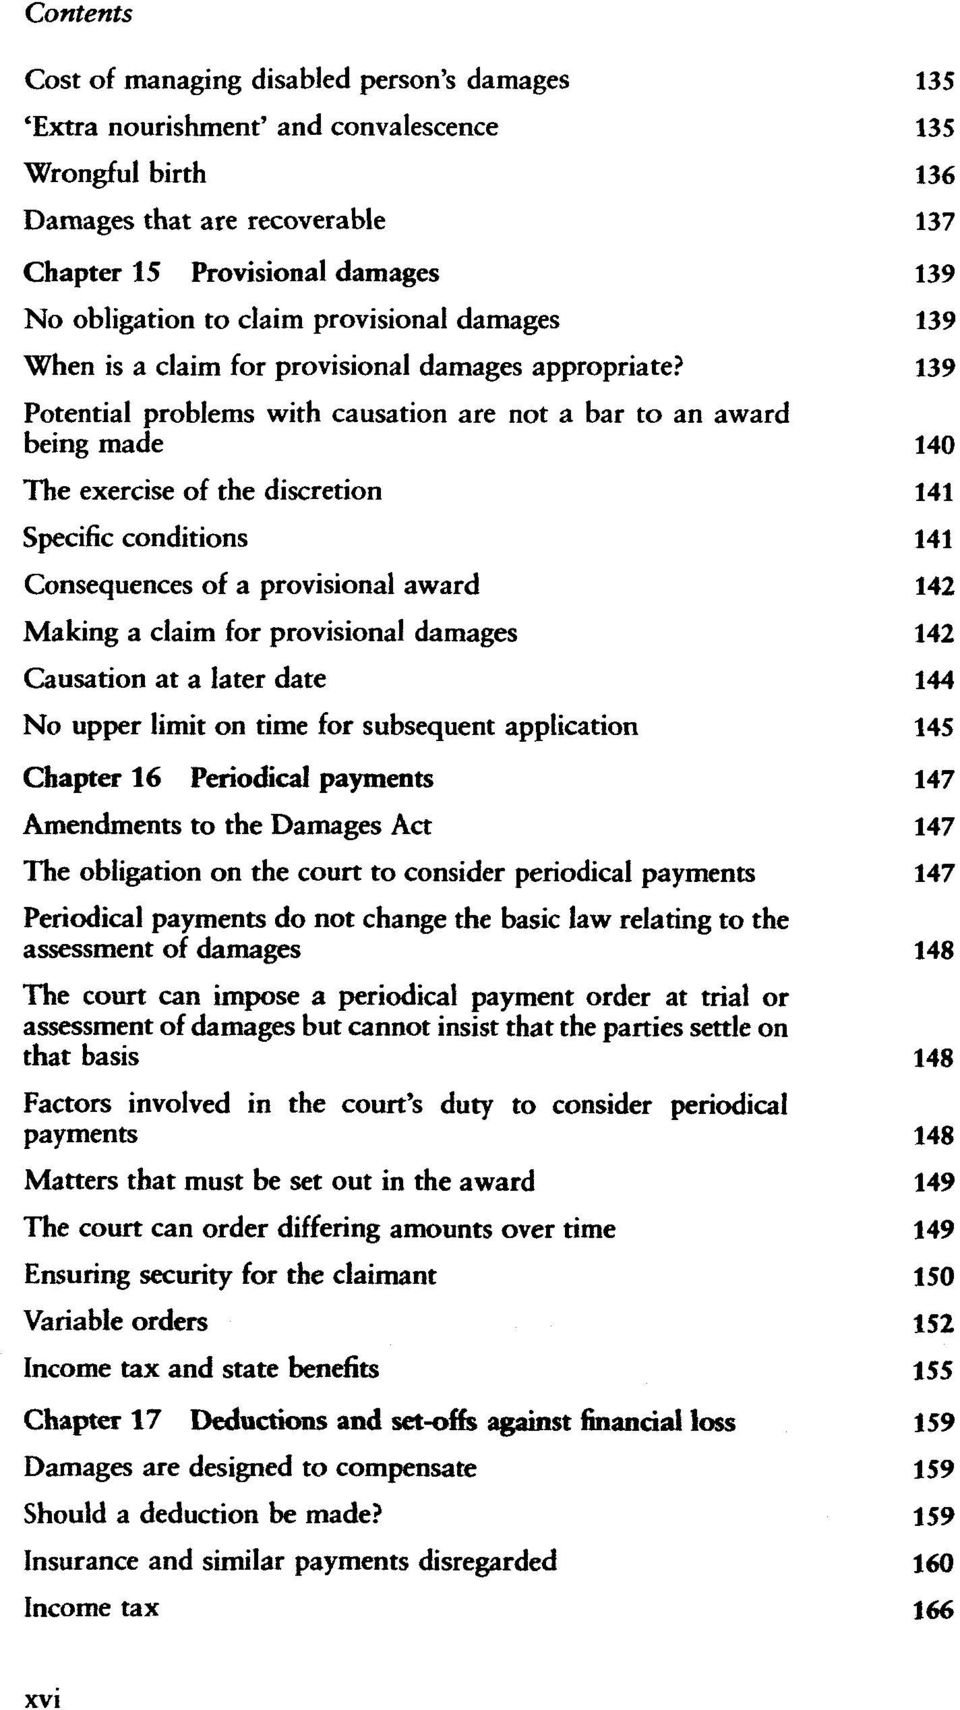 139 Potential problems with causation are not a bar to an award being made 140 The exercise of the discretion 141 Specific conditions 141 Consequences of a provisional award 142 Making a claim for